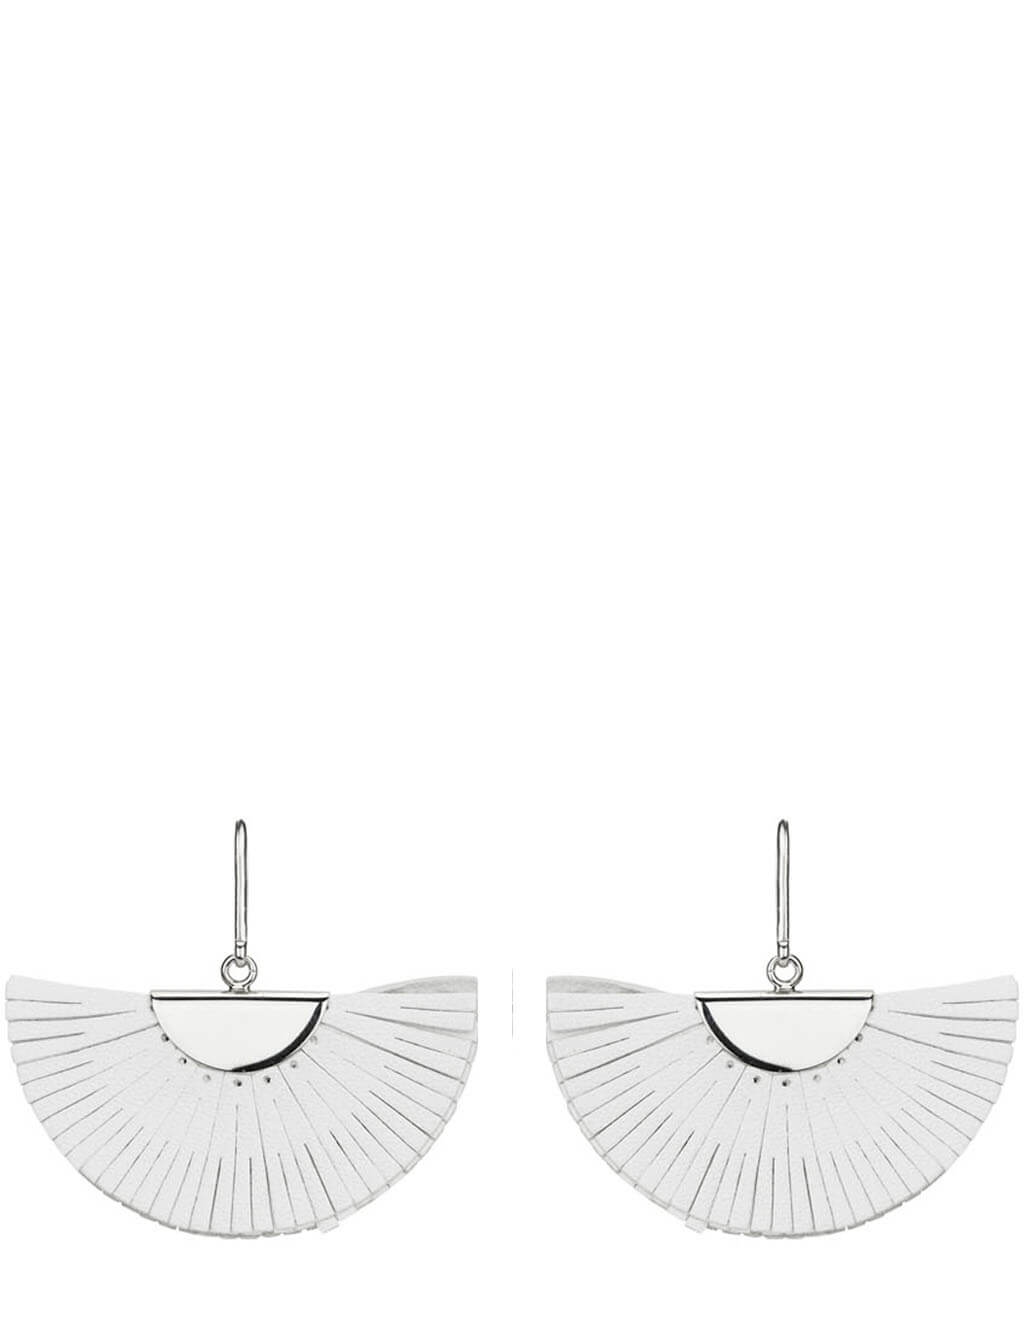 Women's Isabel Marant Summer Leather Earrings in White/Silver - BL107421P015BWHSI